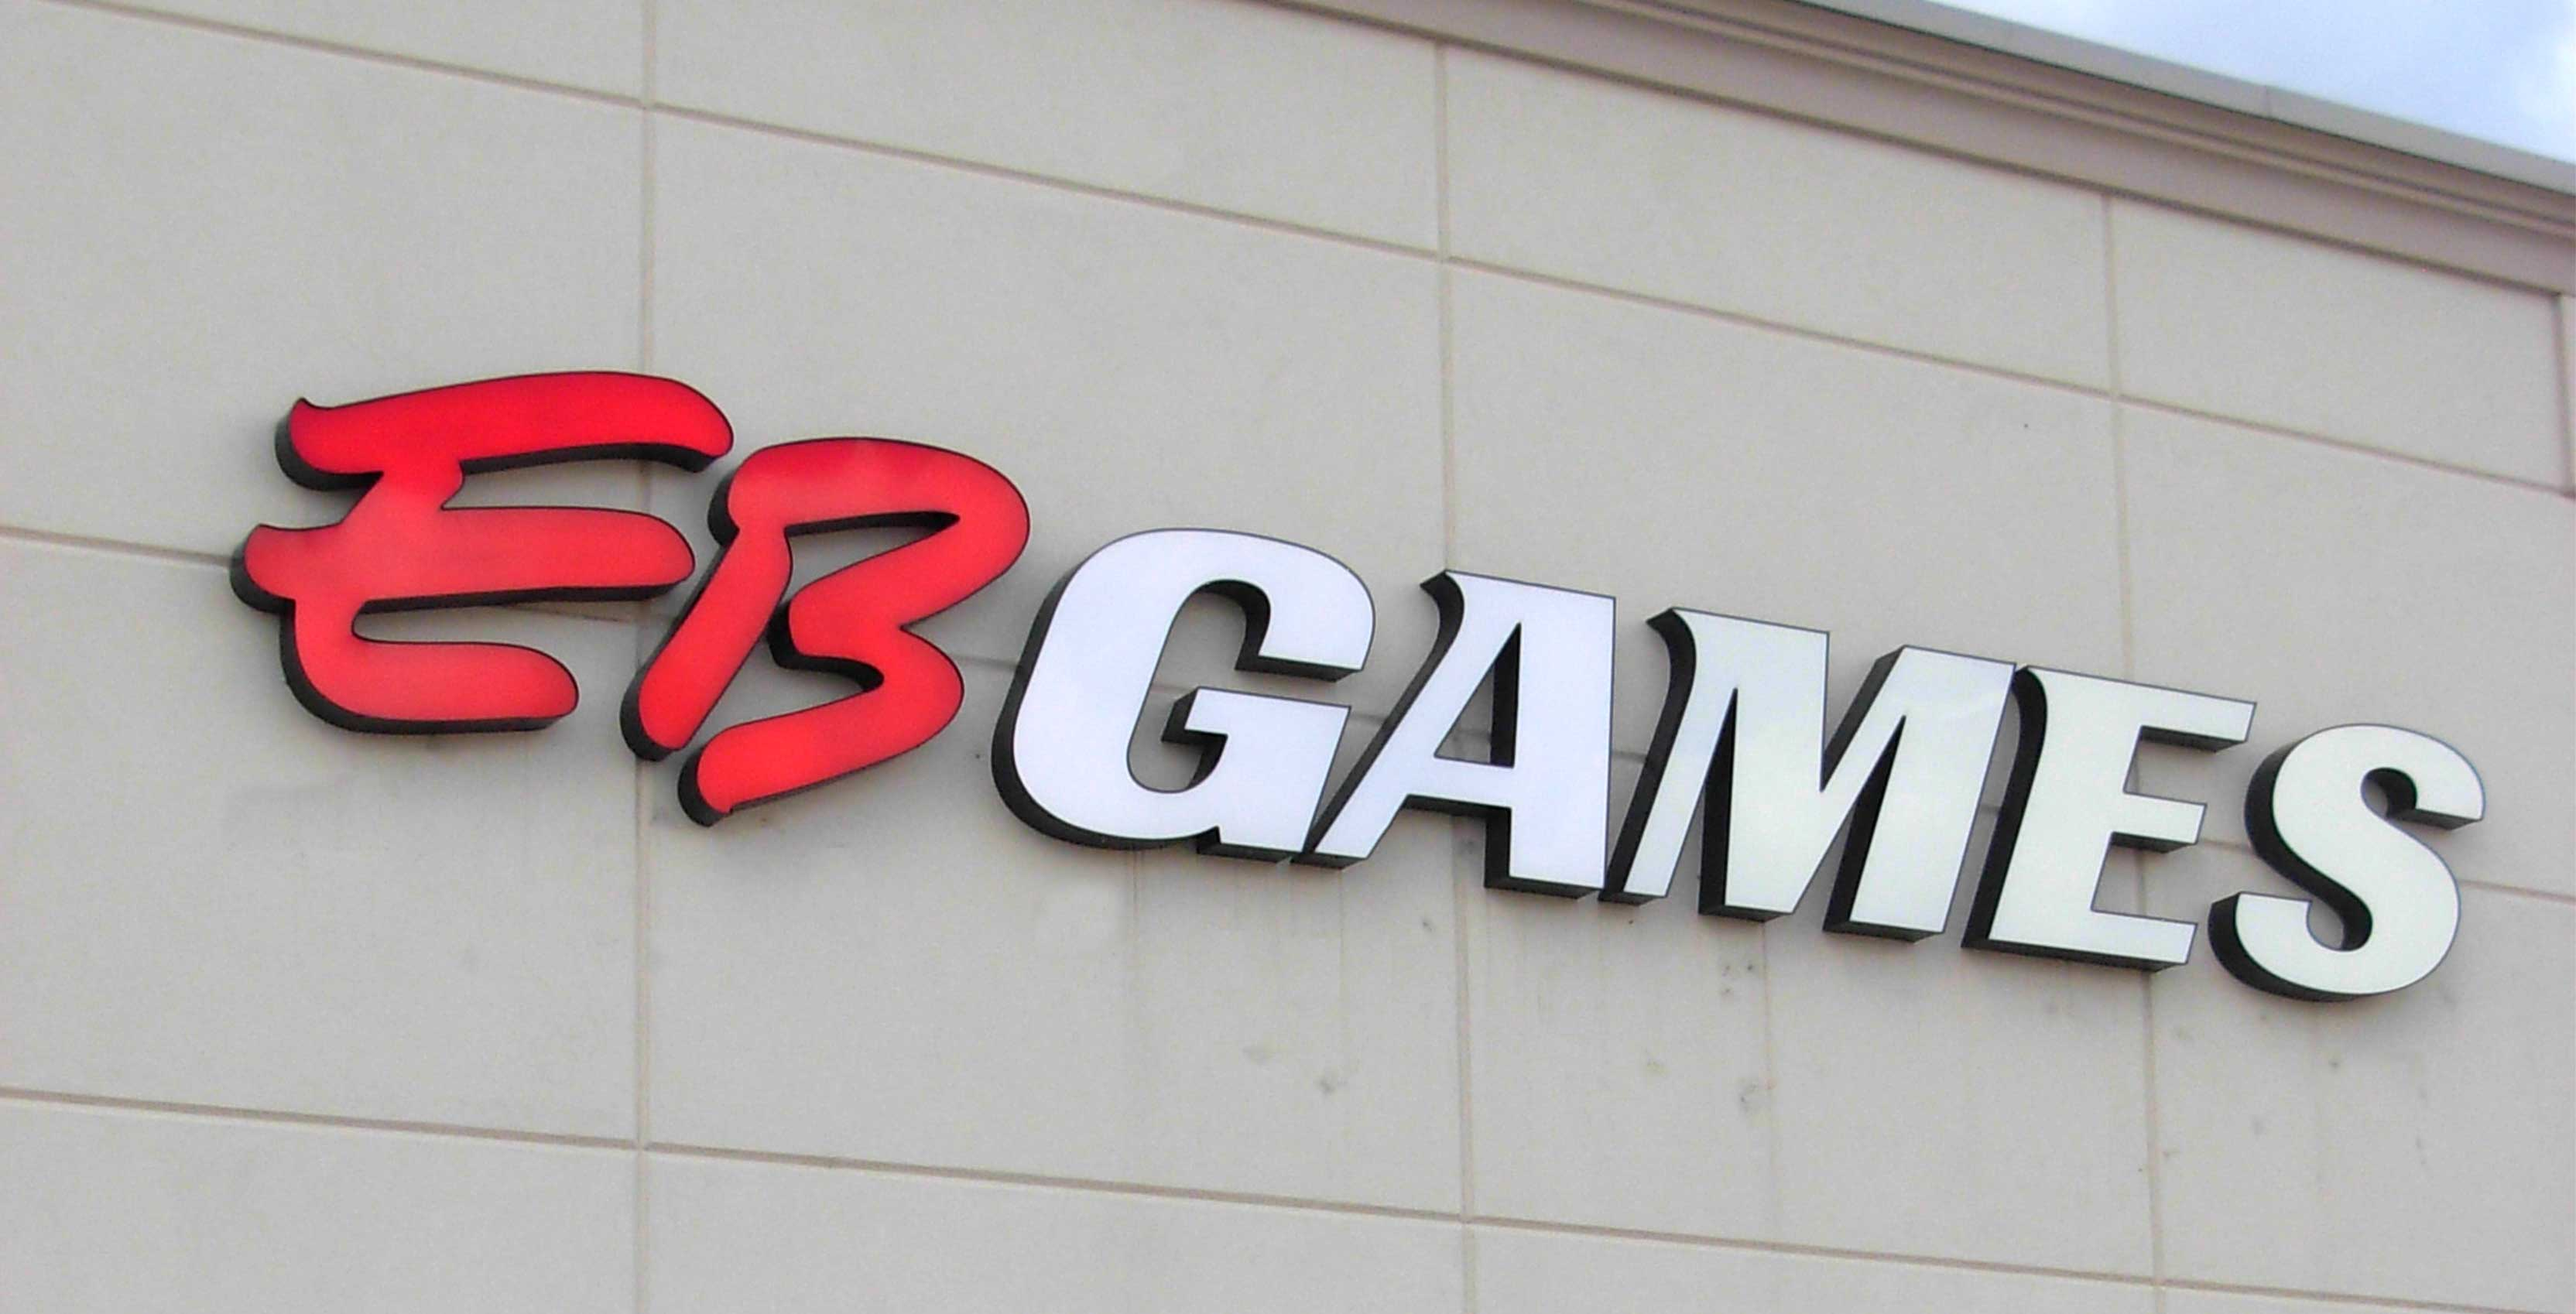 eb games store - freedom mobile